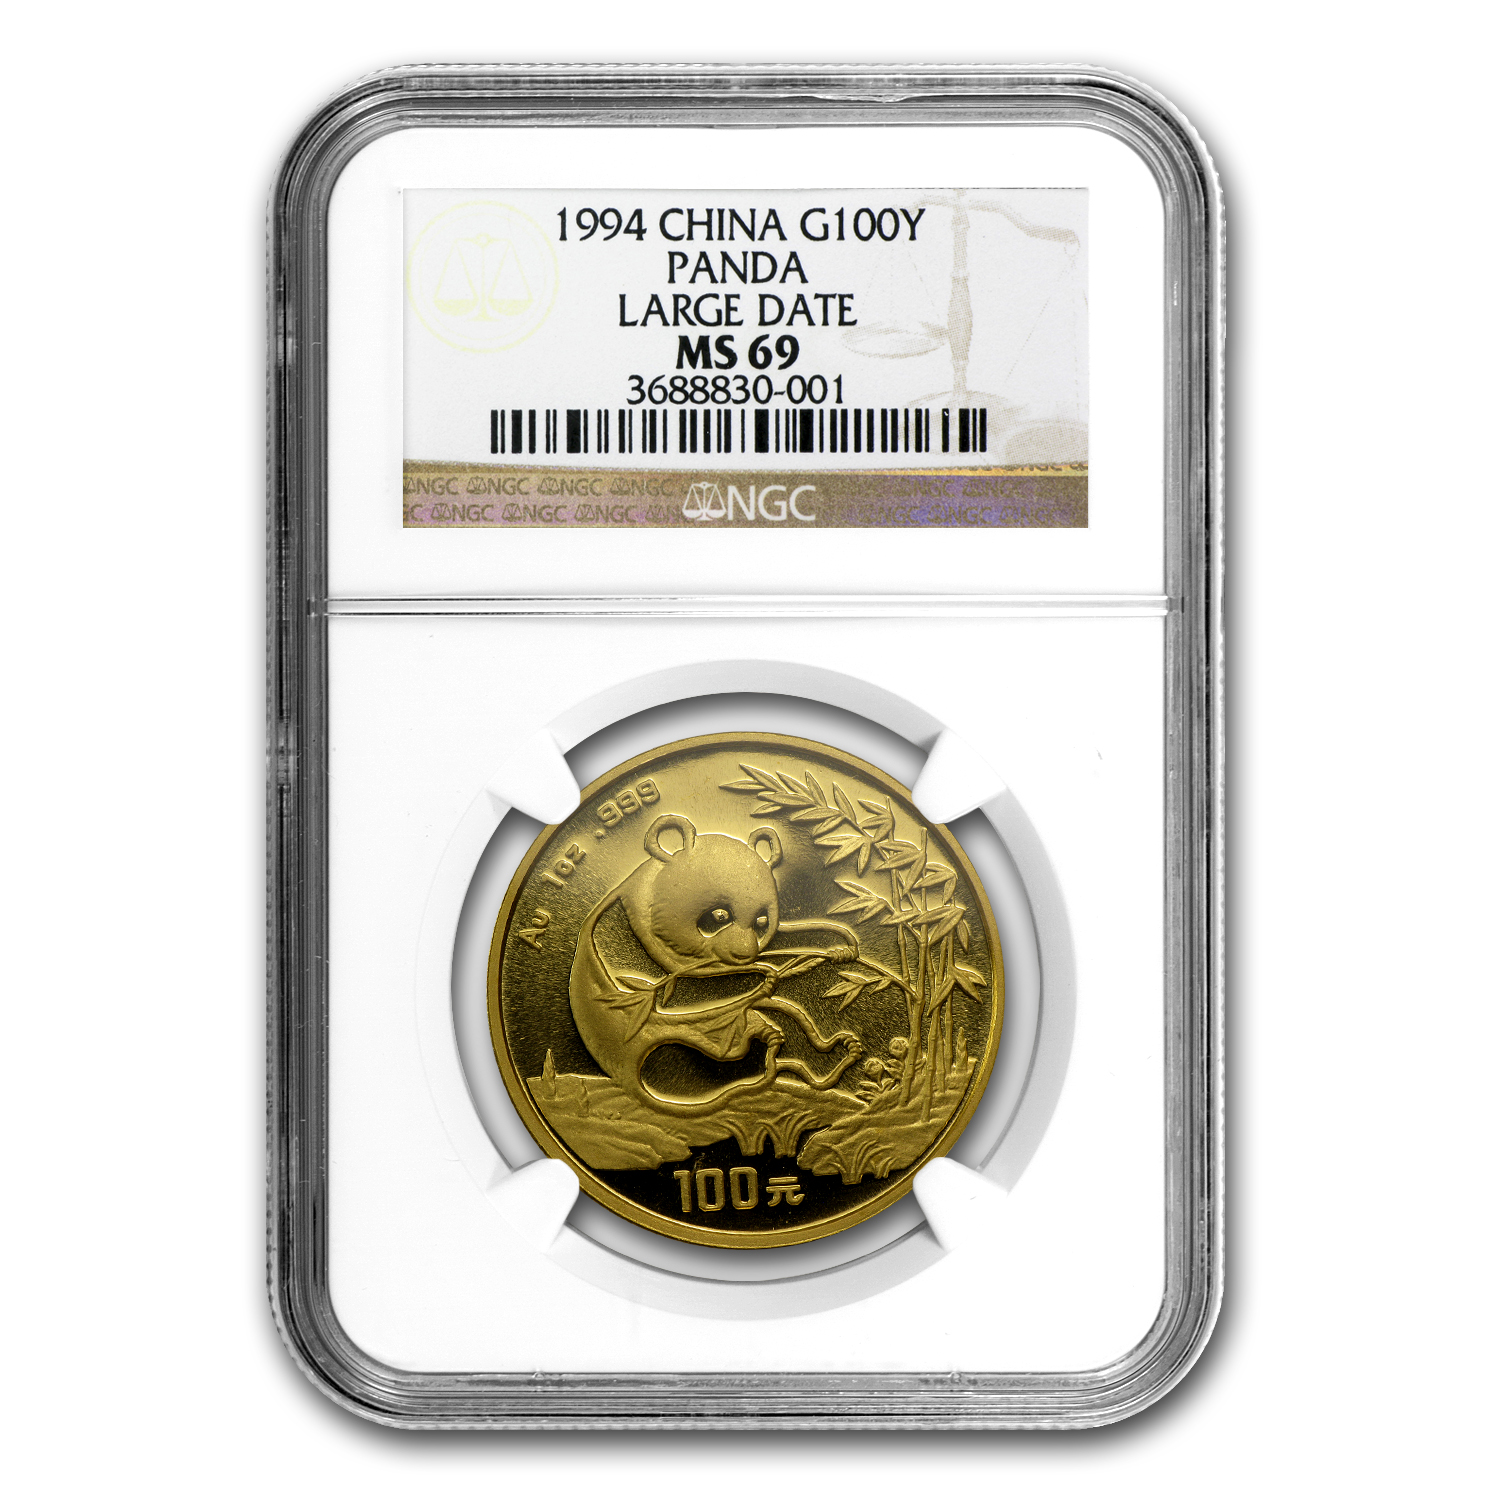 1994 1 oz Gold Chinese Panda MS-69 NGC - Large Date